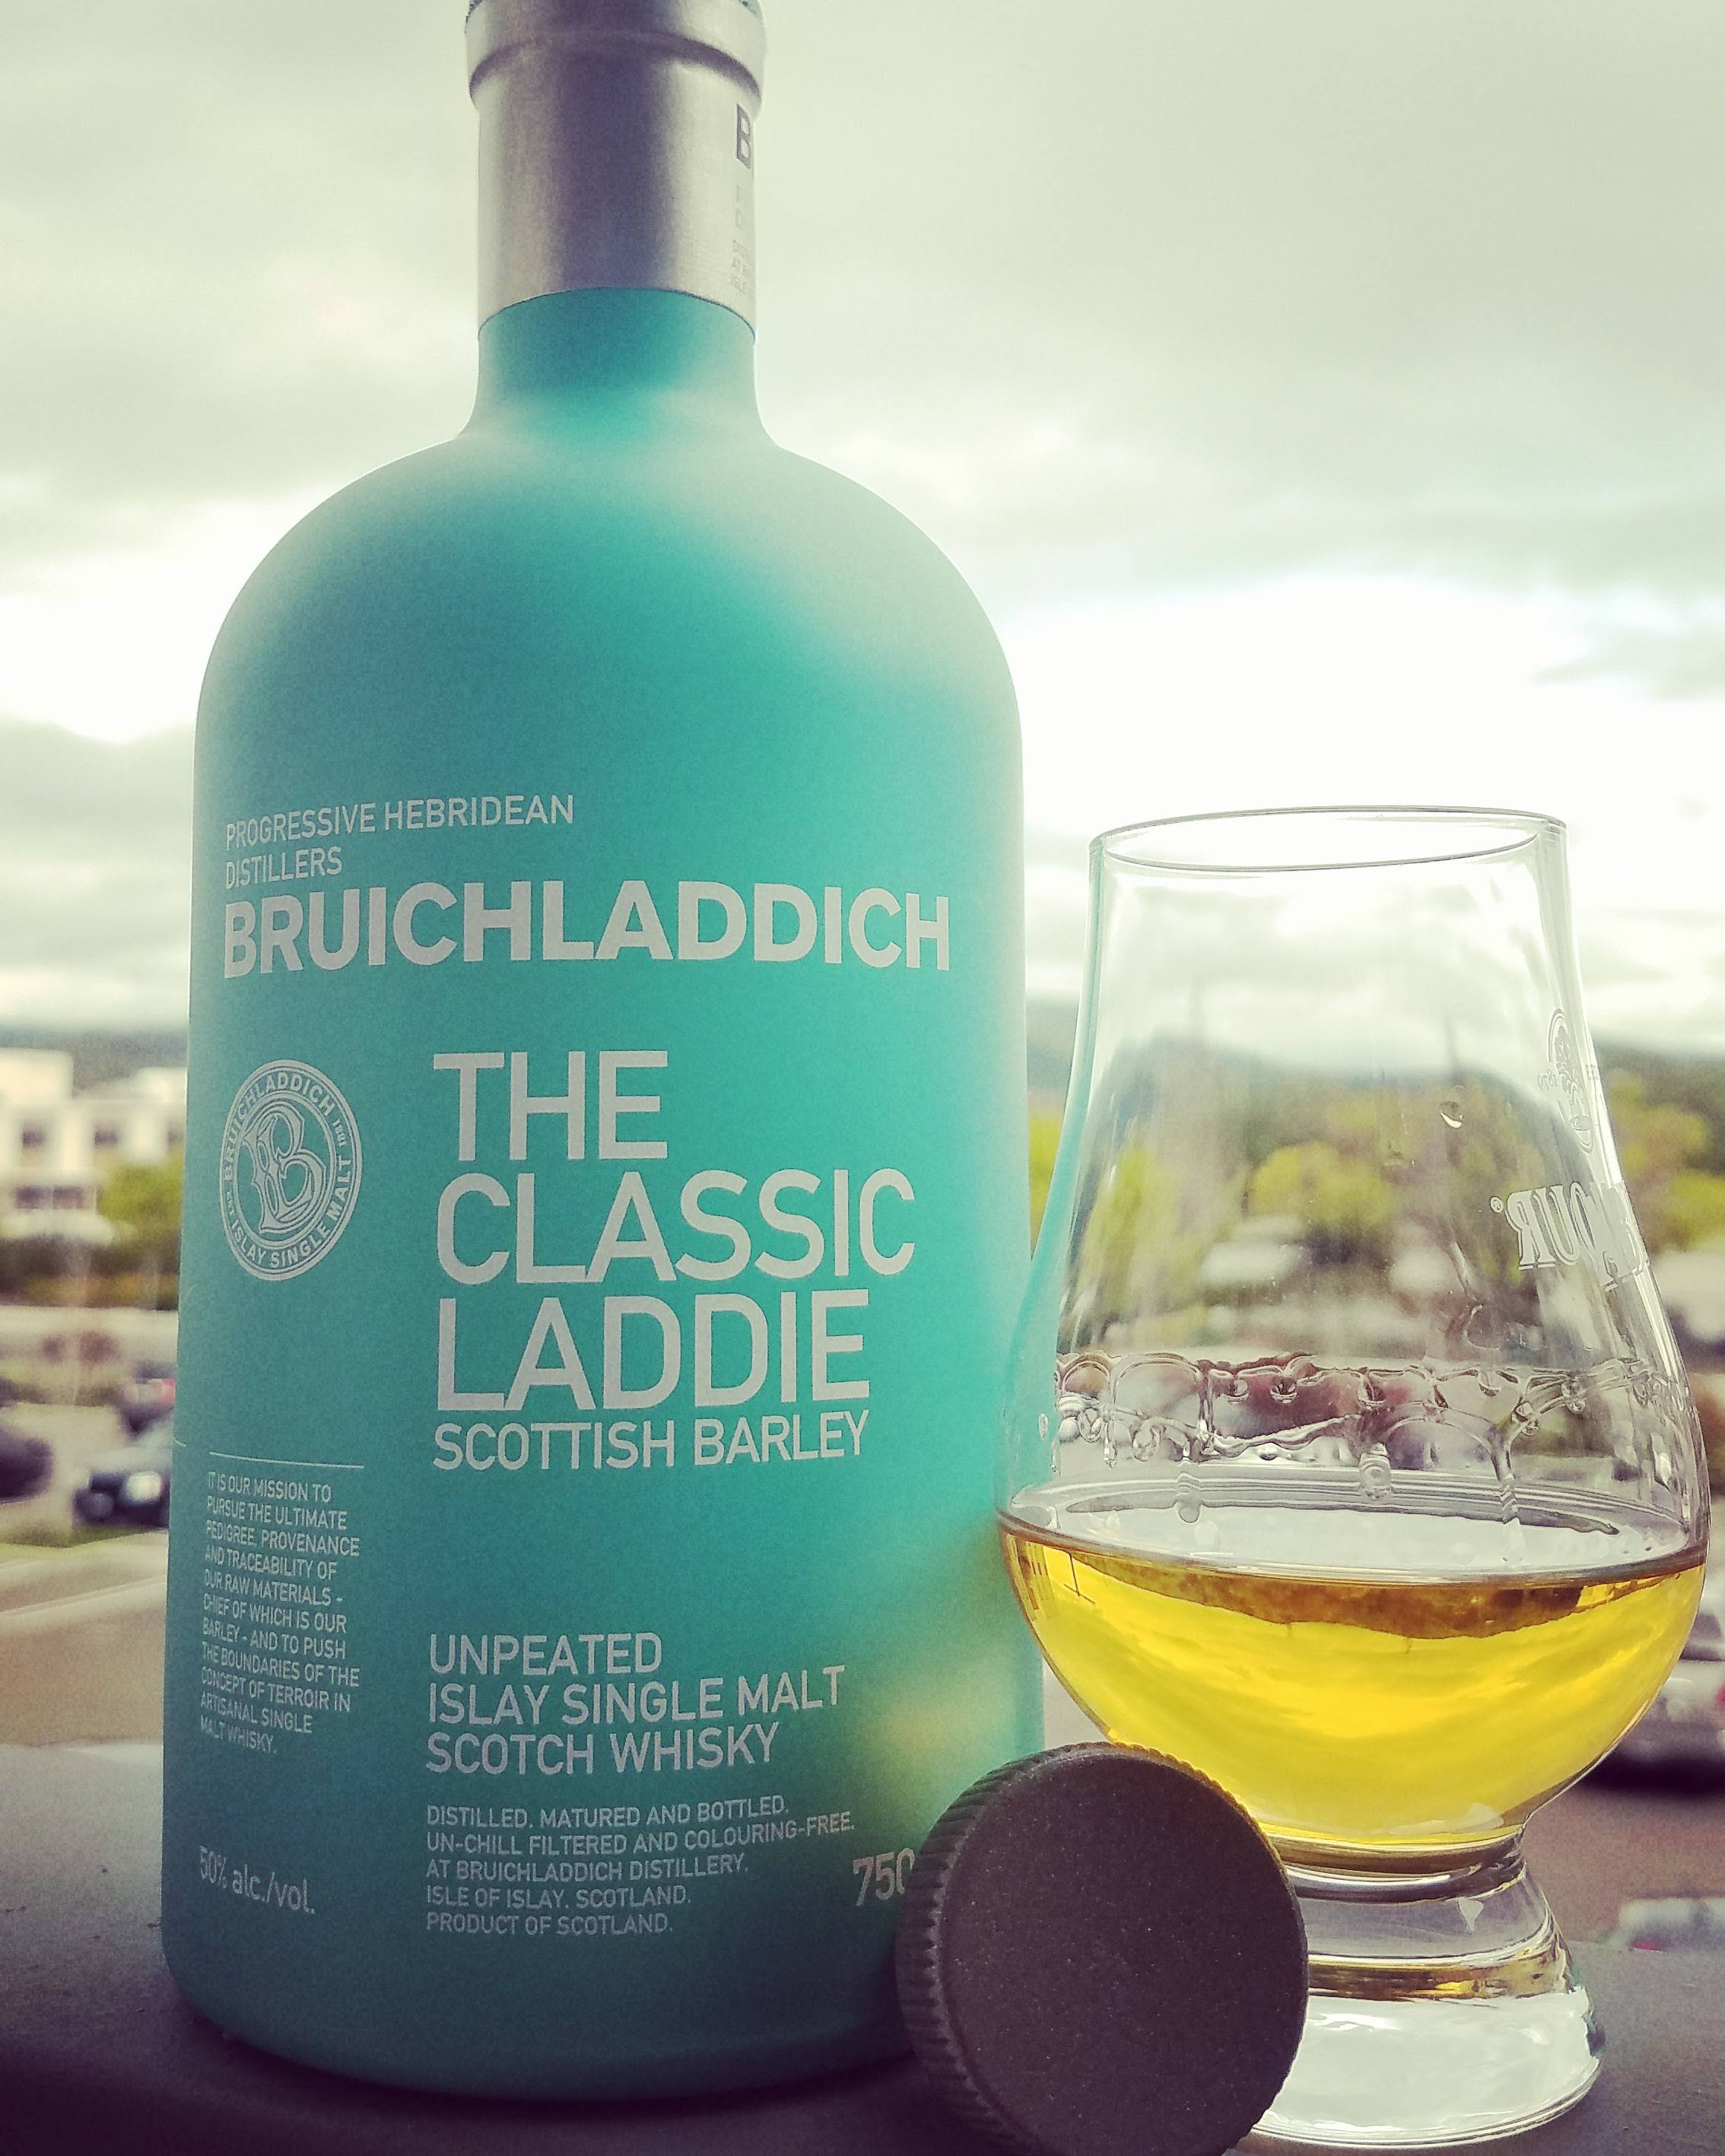 The Bruichladdich The Classic Laddie: JAWS Rating 8.1/10